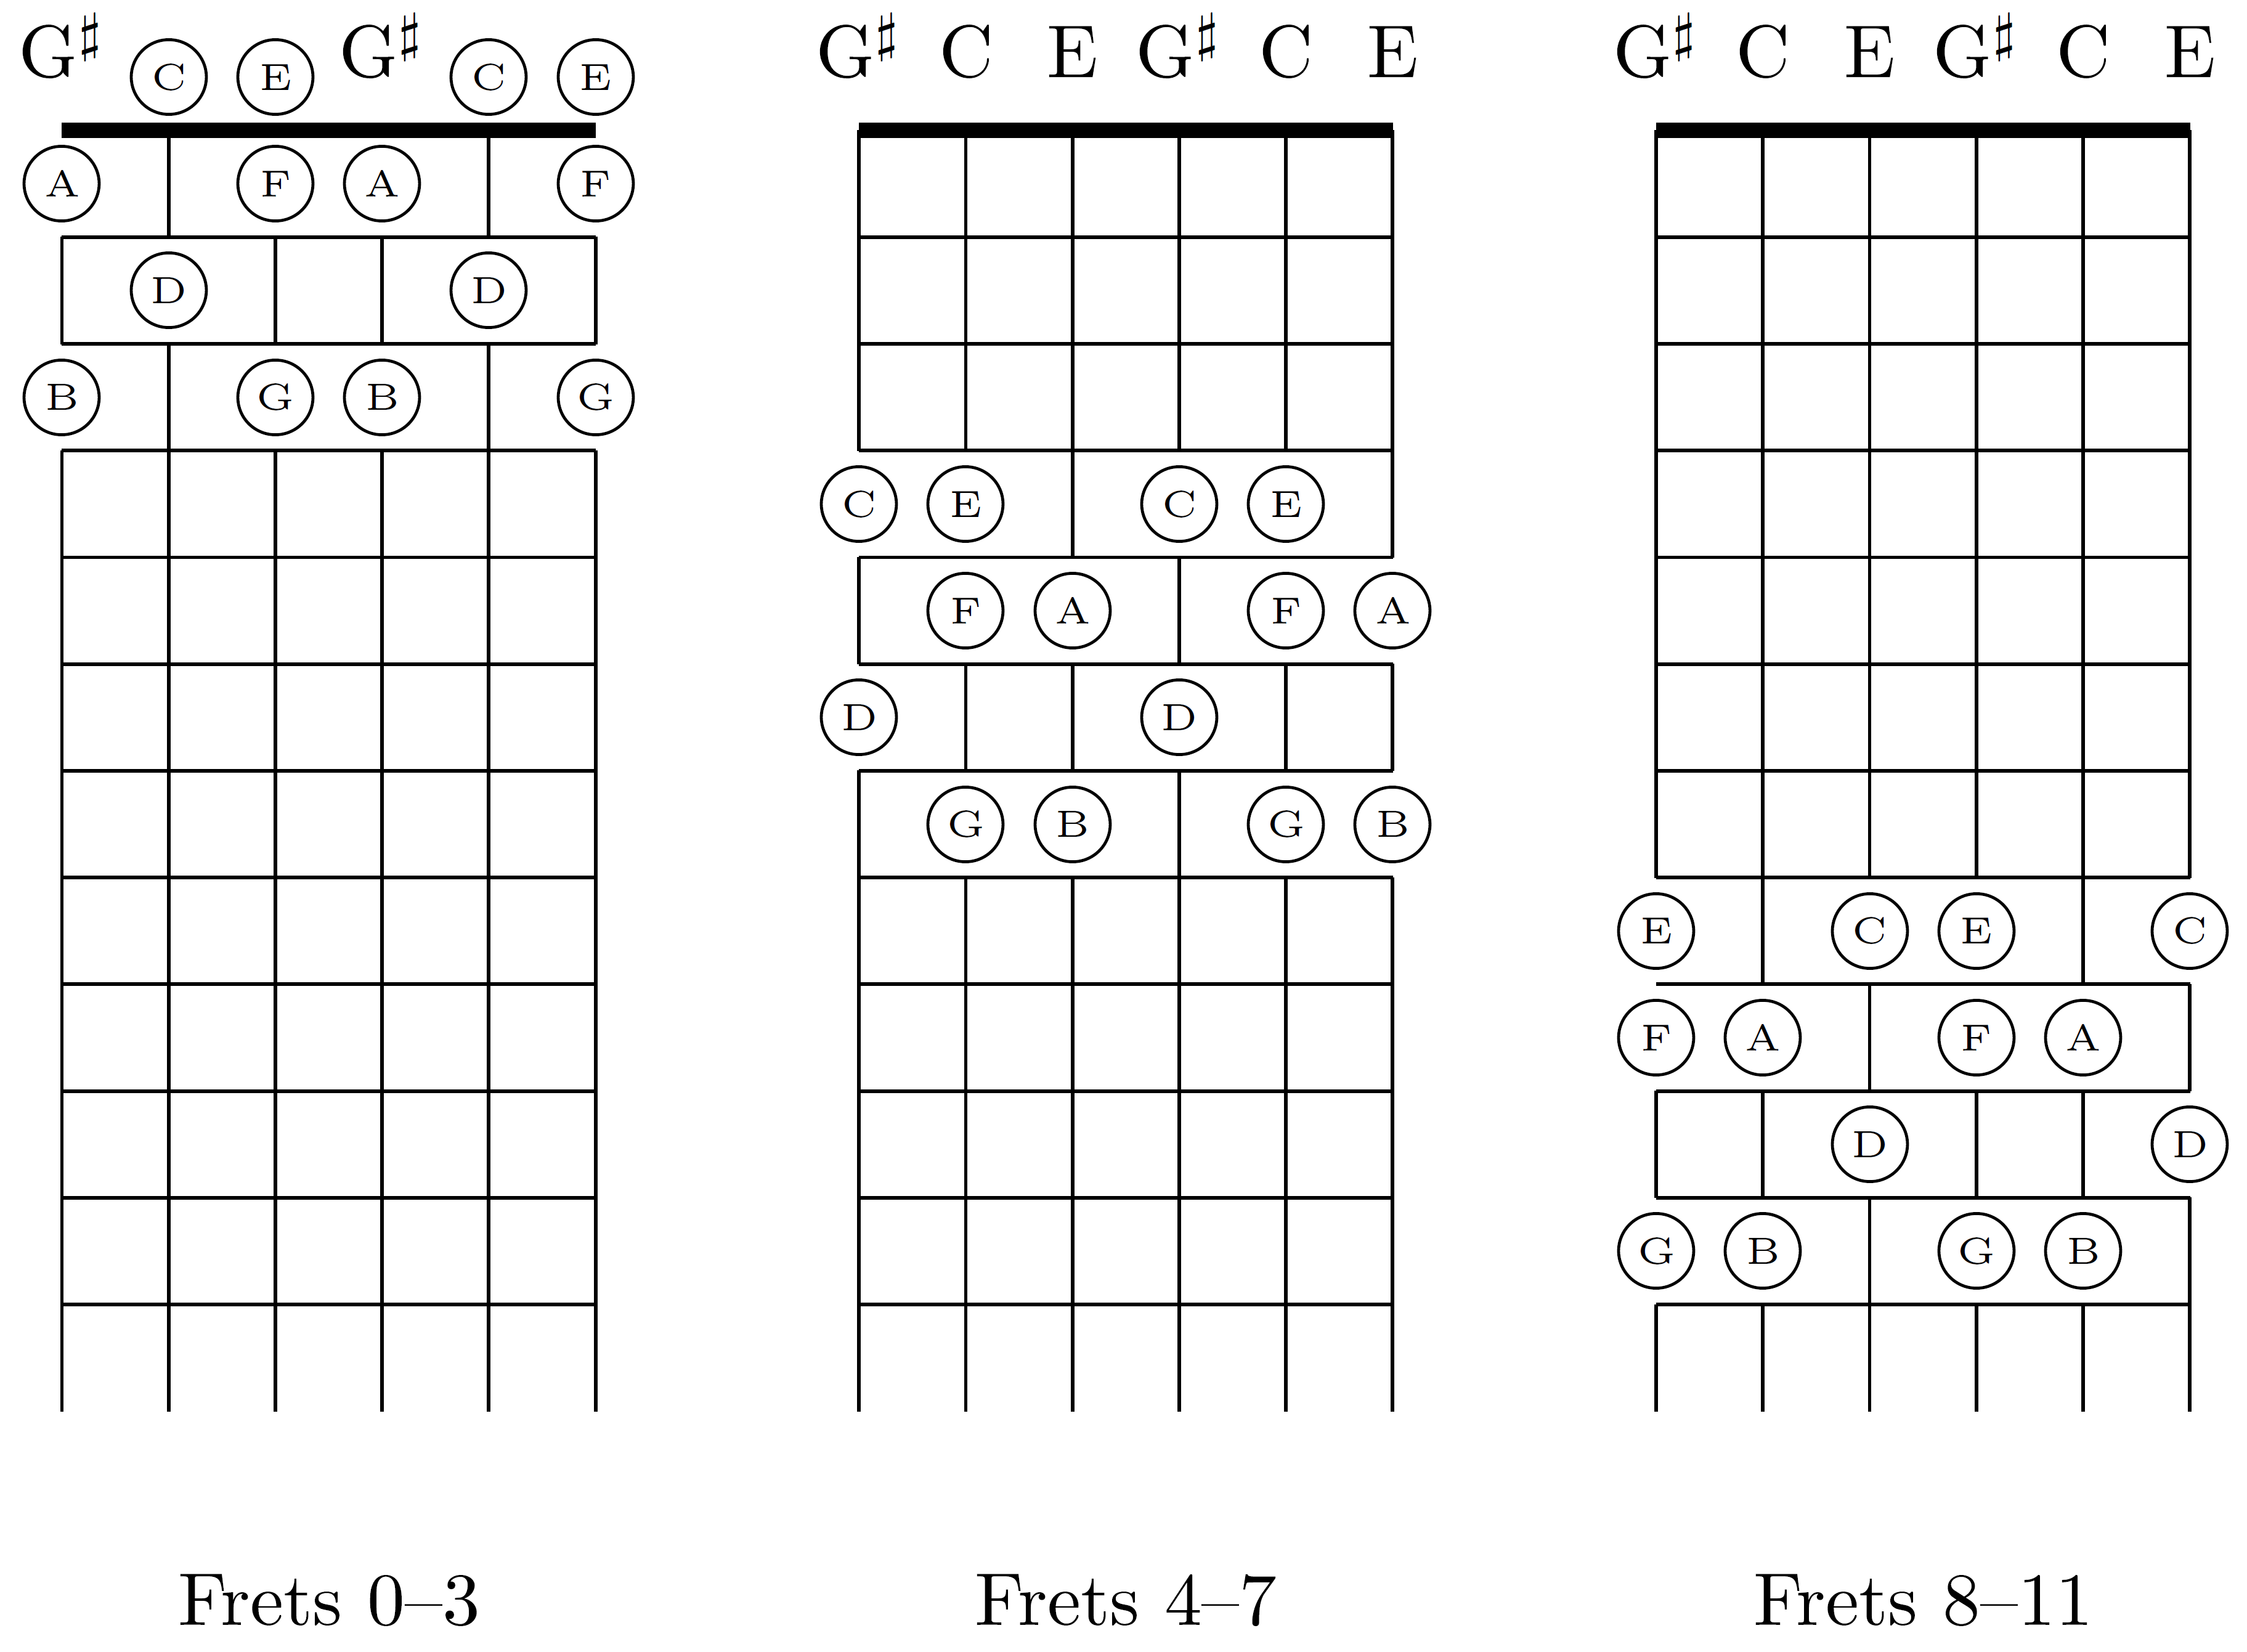 FileSegmented Fretboard Of Major Thirds Tuning For Six String Guitar